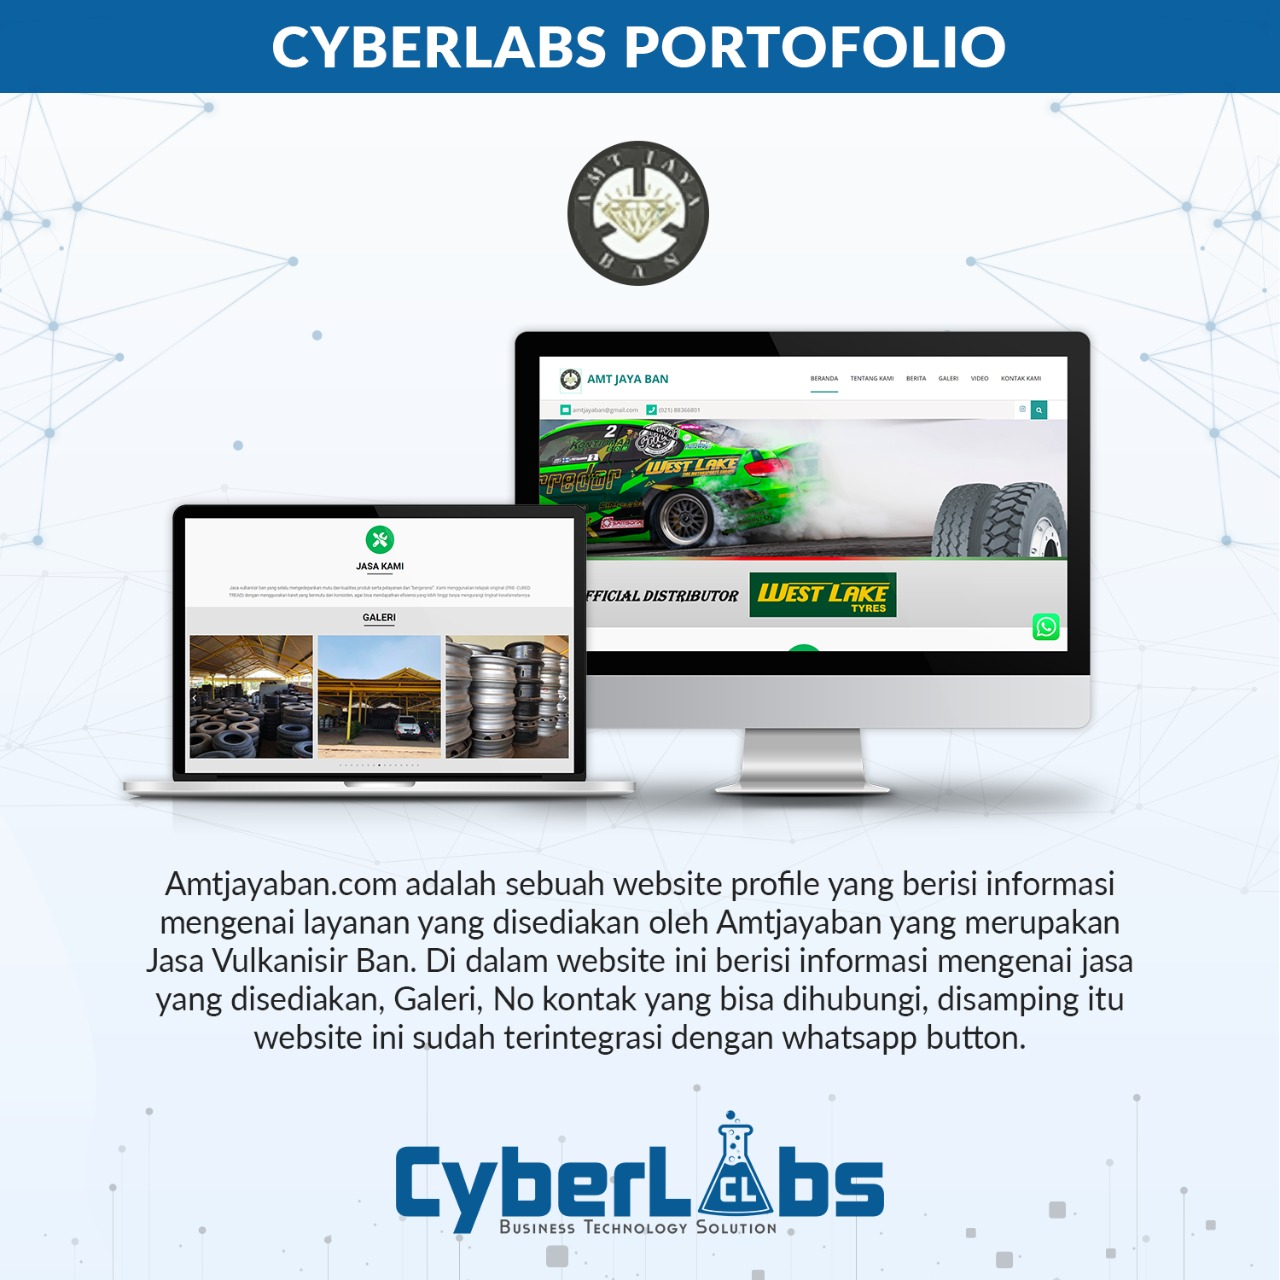 Amtjayaban - Portfolio Website CyberLabs